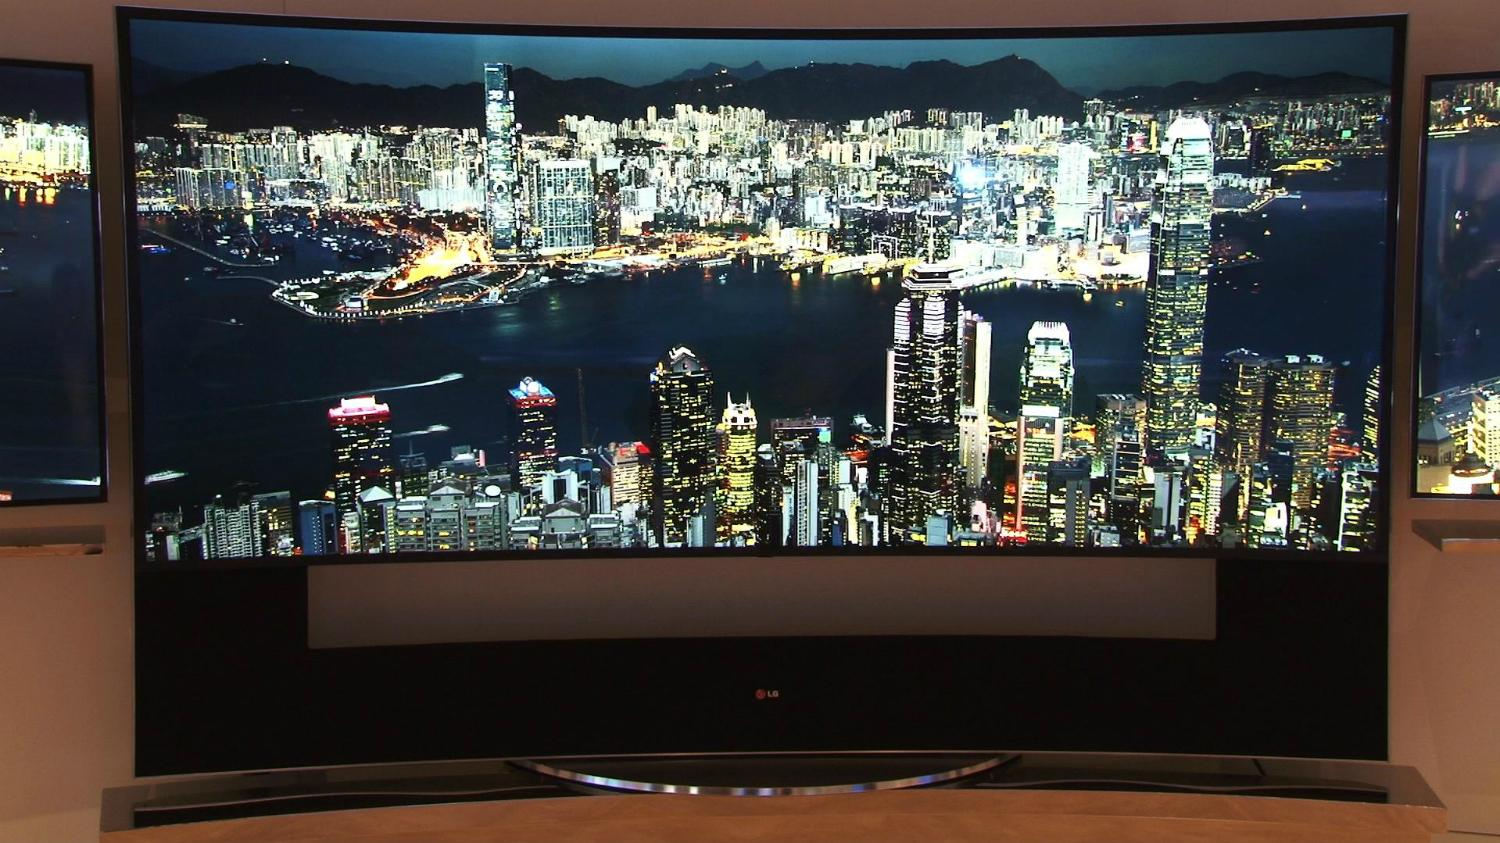 LG releases curved 105inch 5K UltraHD TV  Digital Trends